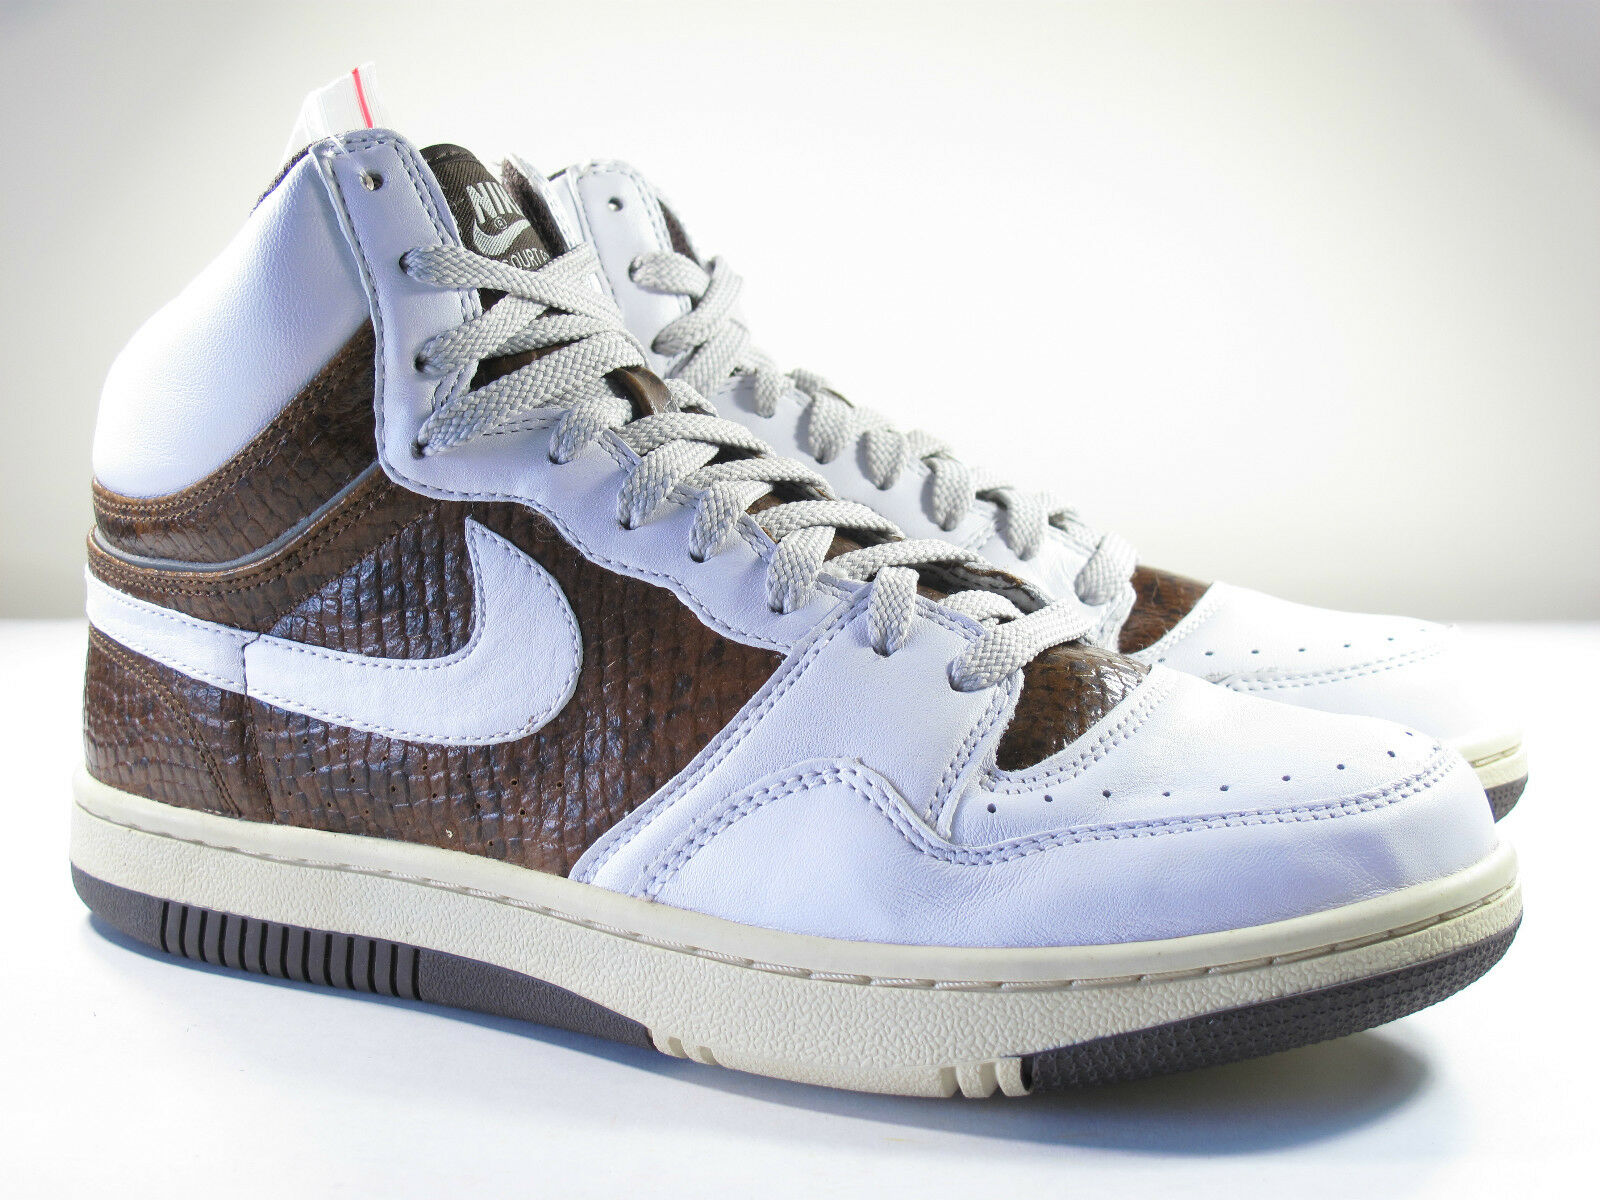 DS NIKE 2007 AIR COURT FORCE PYTHON 10 MAX 90 1 180 DUNK TRAINER SAFARI SNAKE 97